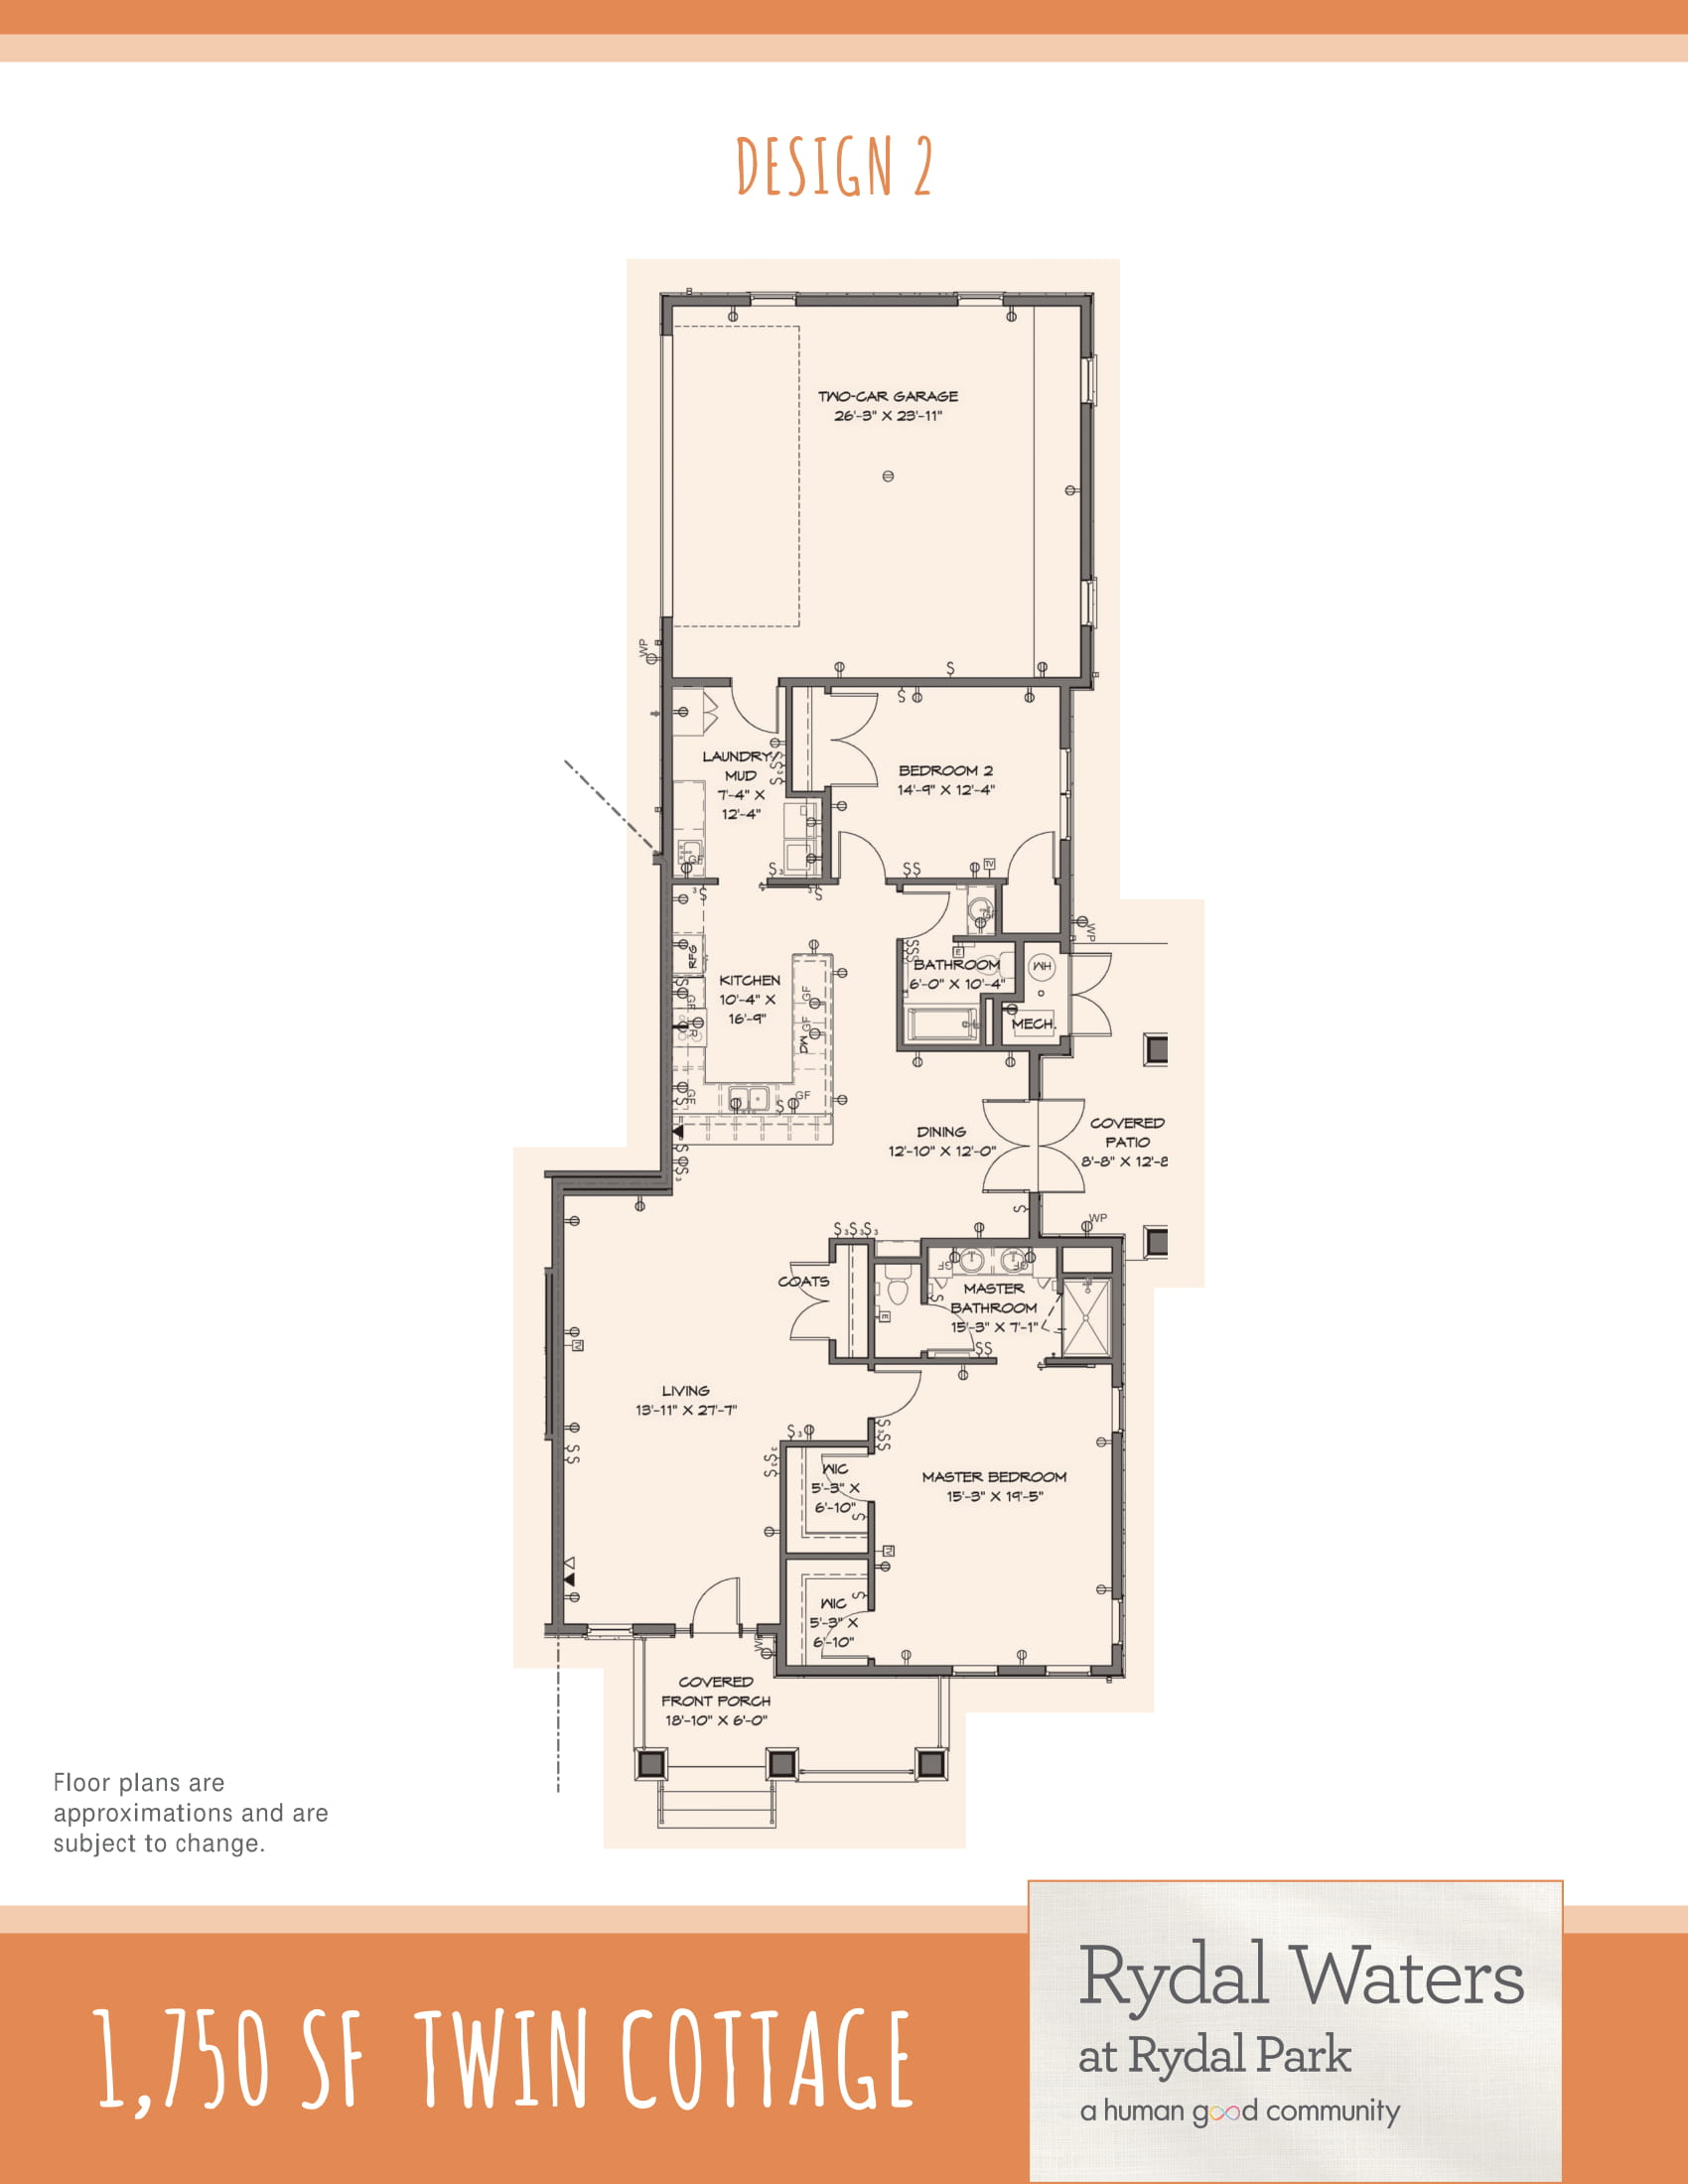 rydal-waters-cottage-1750_Design2-1